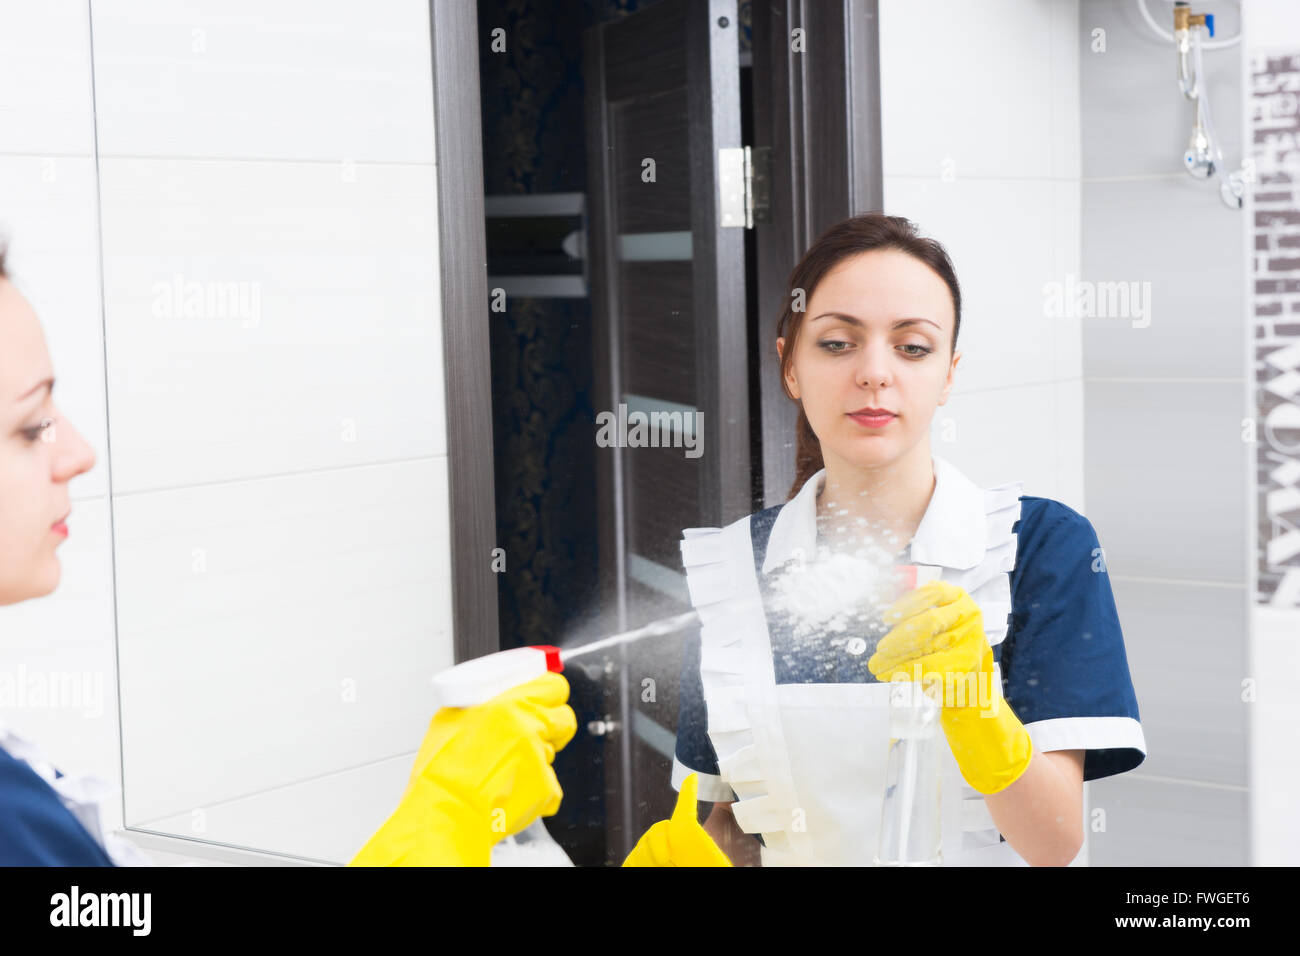 Reflection of serious young adult female maid squirting glass cleaner on mirror while working in hotel bathroom - Stock Image